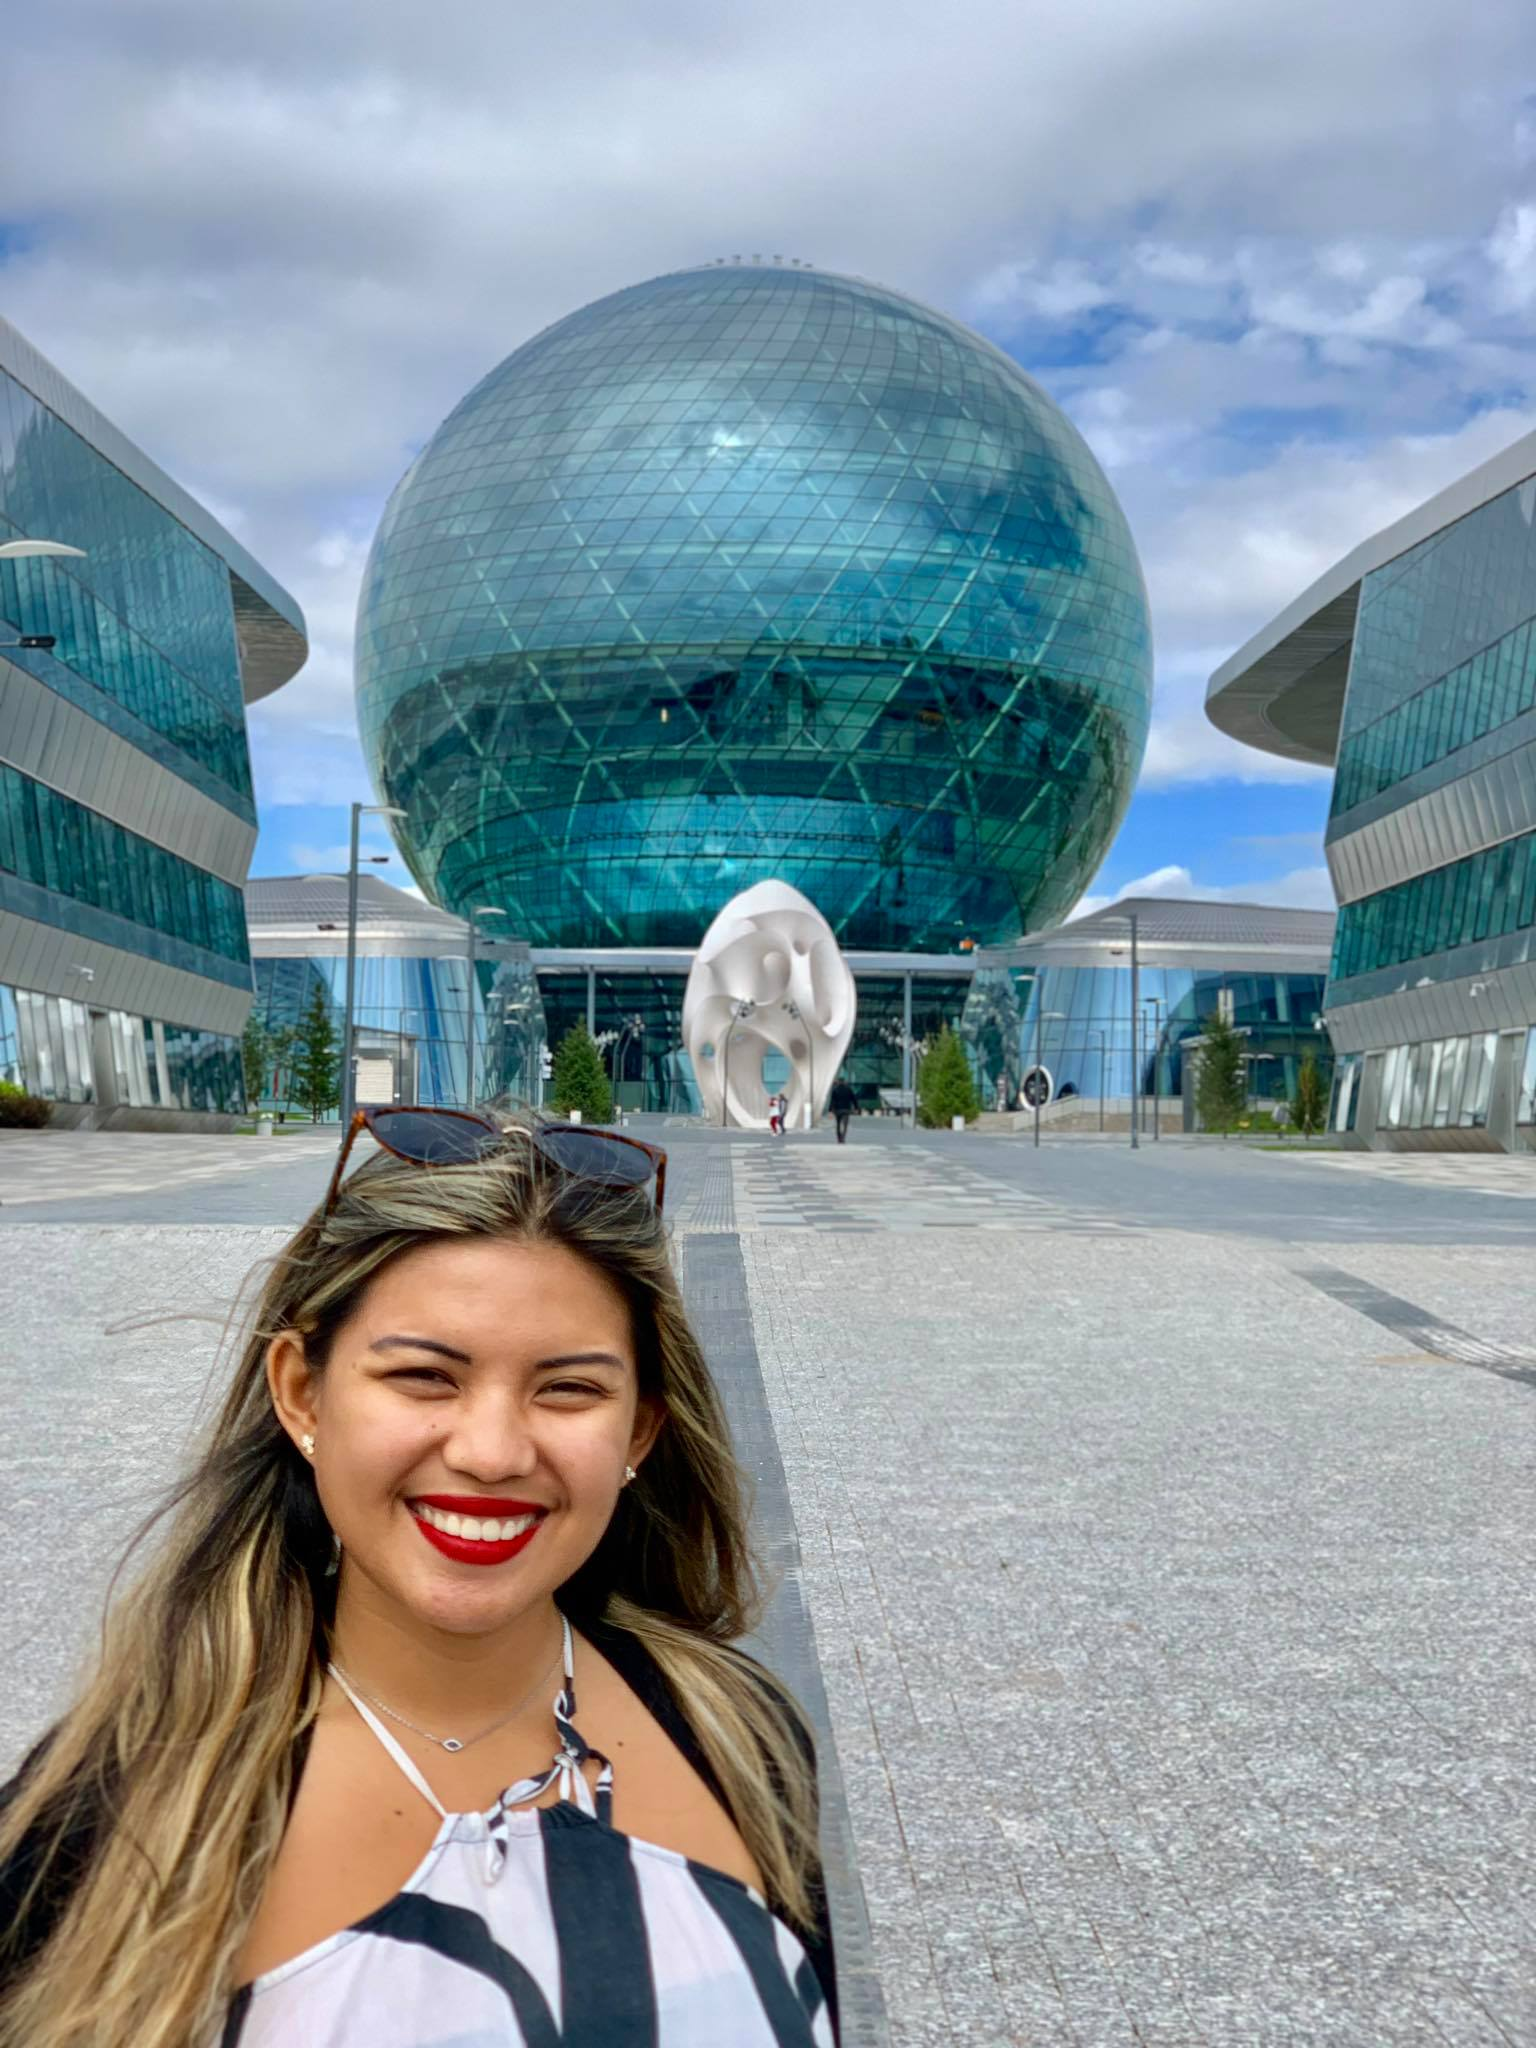 Kach Solo Travels in 2019 Nursultan  Astana - the City of the Future27.jpg